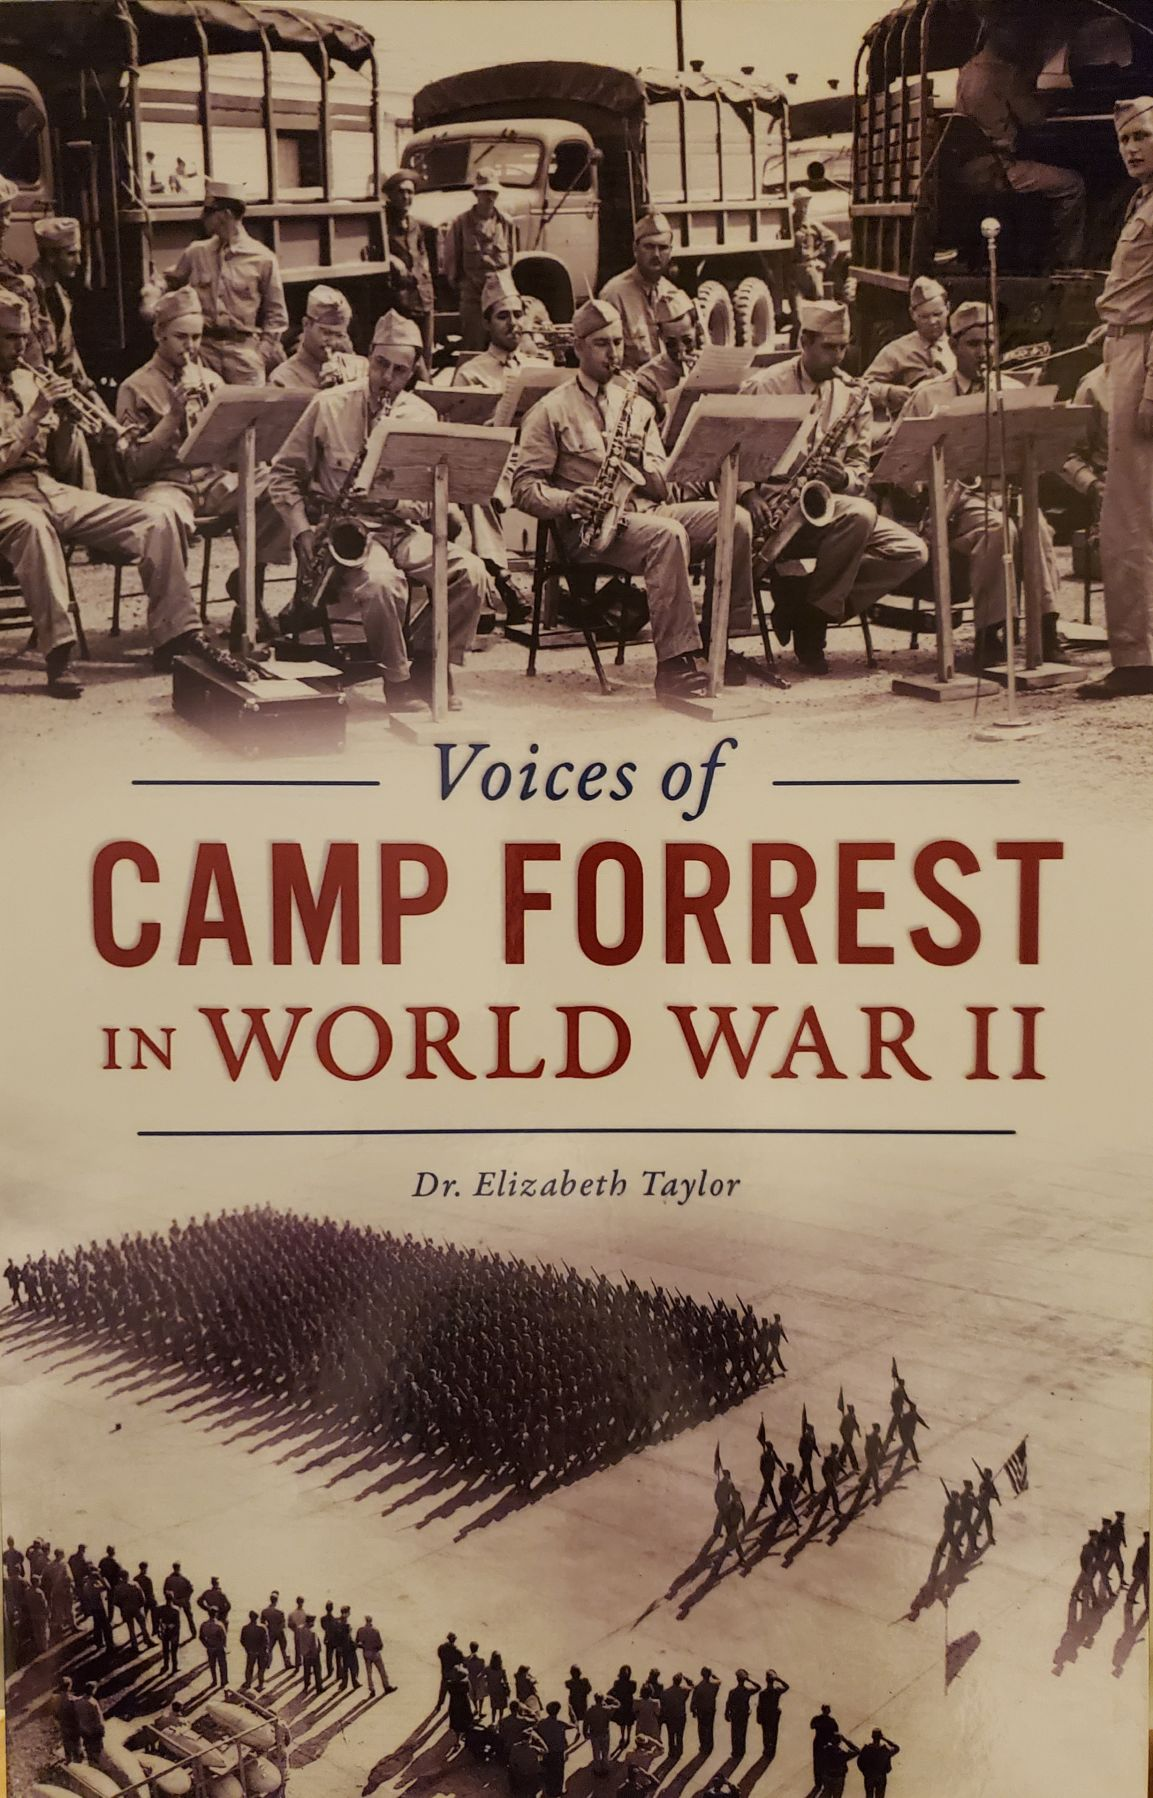 Voices of Camp Forrest